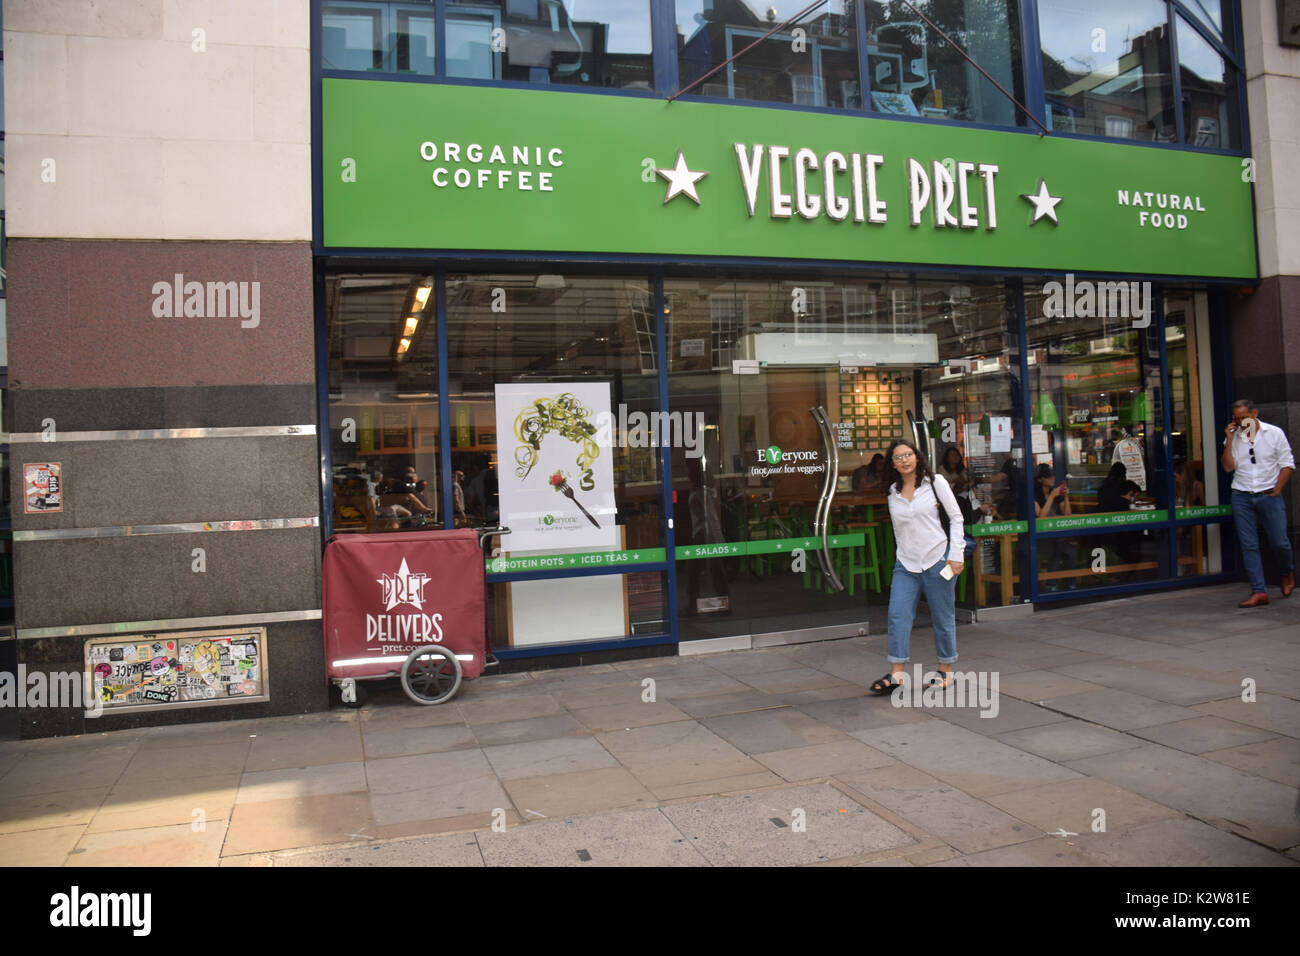 london pret a manger We build a kitchen in (or very near) every shop where pret chefs chop, slice and   every full size pret soup sold donates 10p to the pret foundation trust to help   registered office is at 75b, verde, 10 bressenden place, london sw1e 5dh.